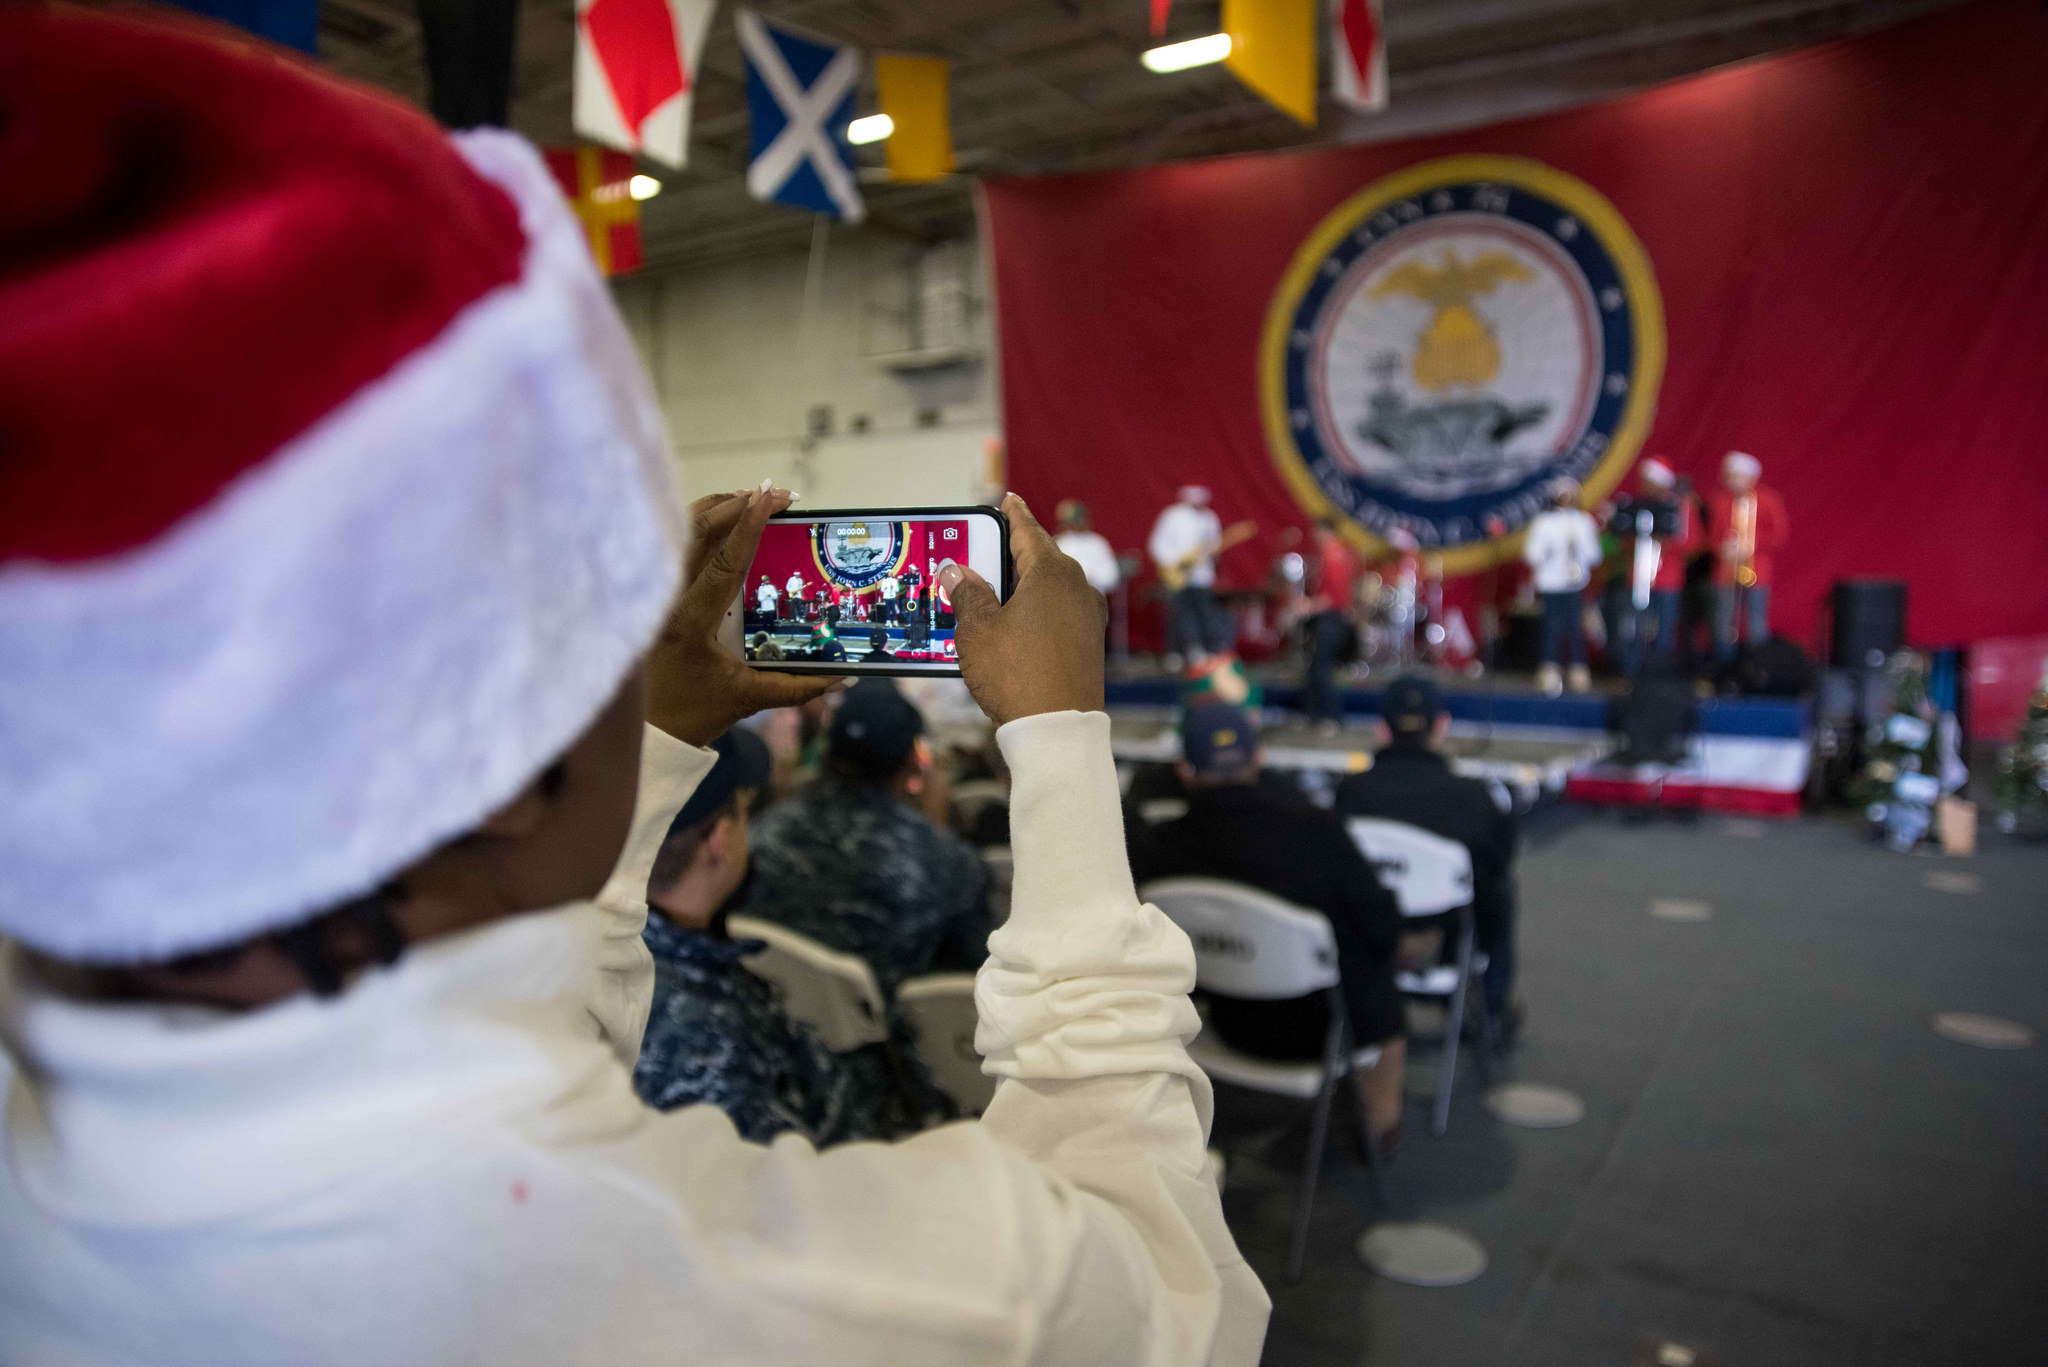 Sailors assigned to the aircraft carrier USS John C. Stennis (CVN 74) participate in a holiday event held by the ship's crew in the hangar bay on Dec. 15, 2017, in Bremerton, Wash. (MC3 William Ford/Navy)